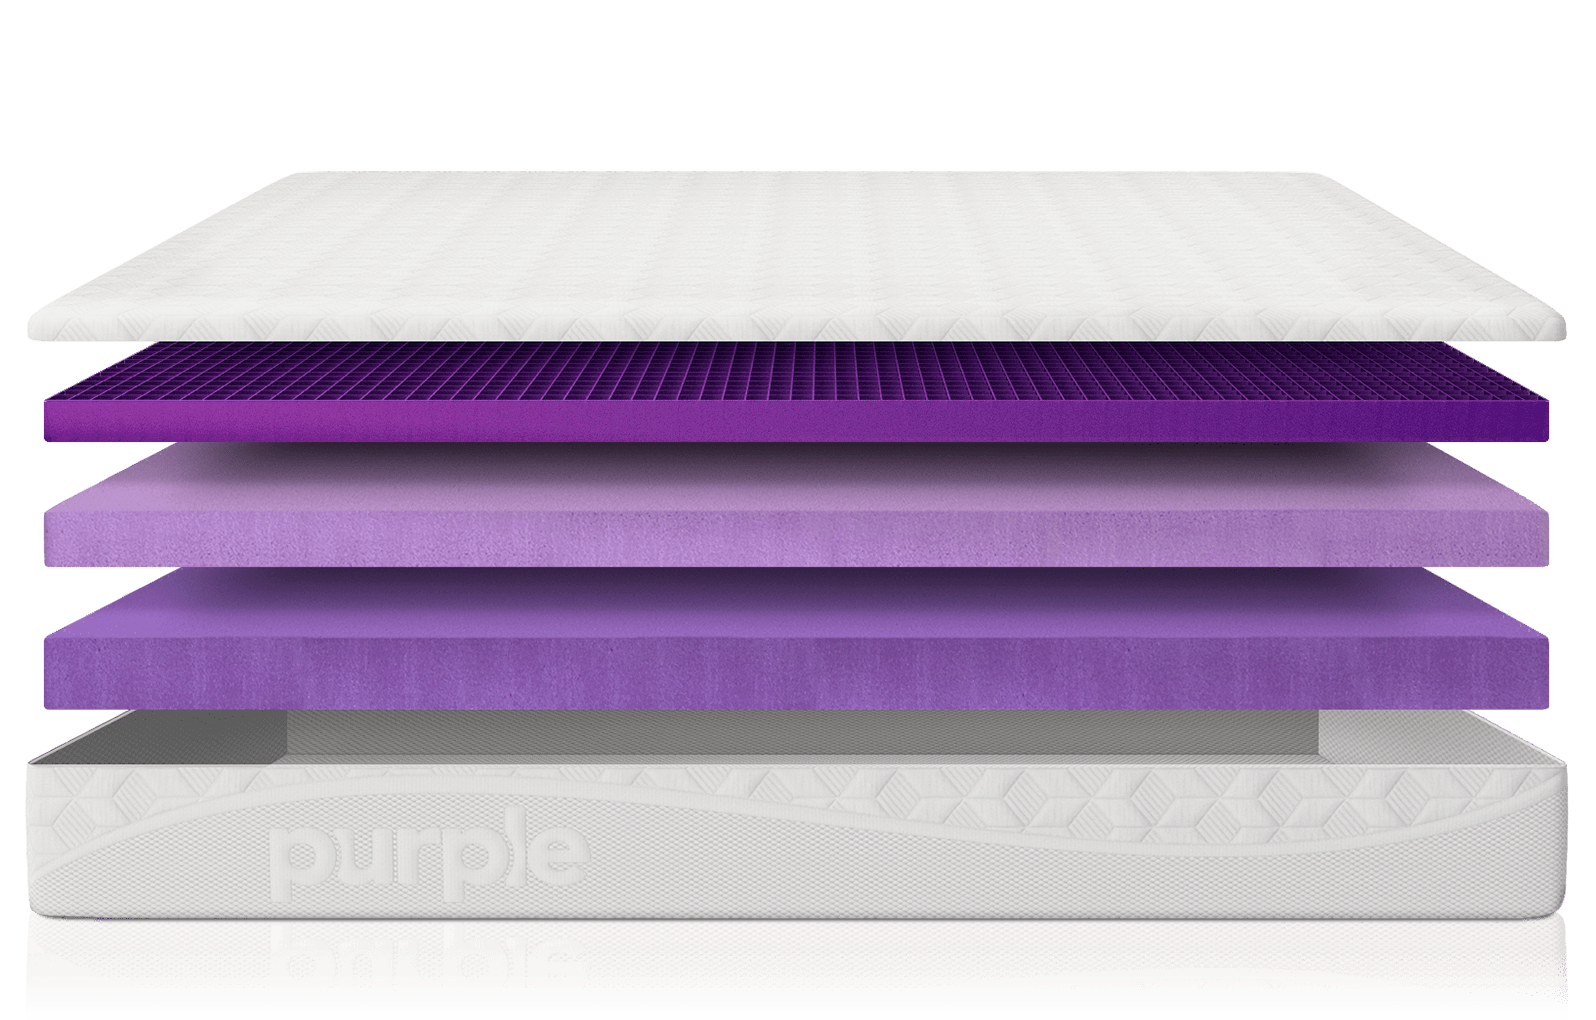 Best Traditional Mattress Shop Mattresses Best Mattress Of 2019 Purple